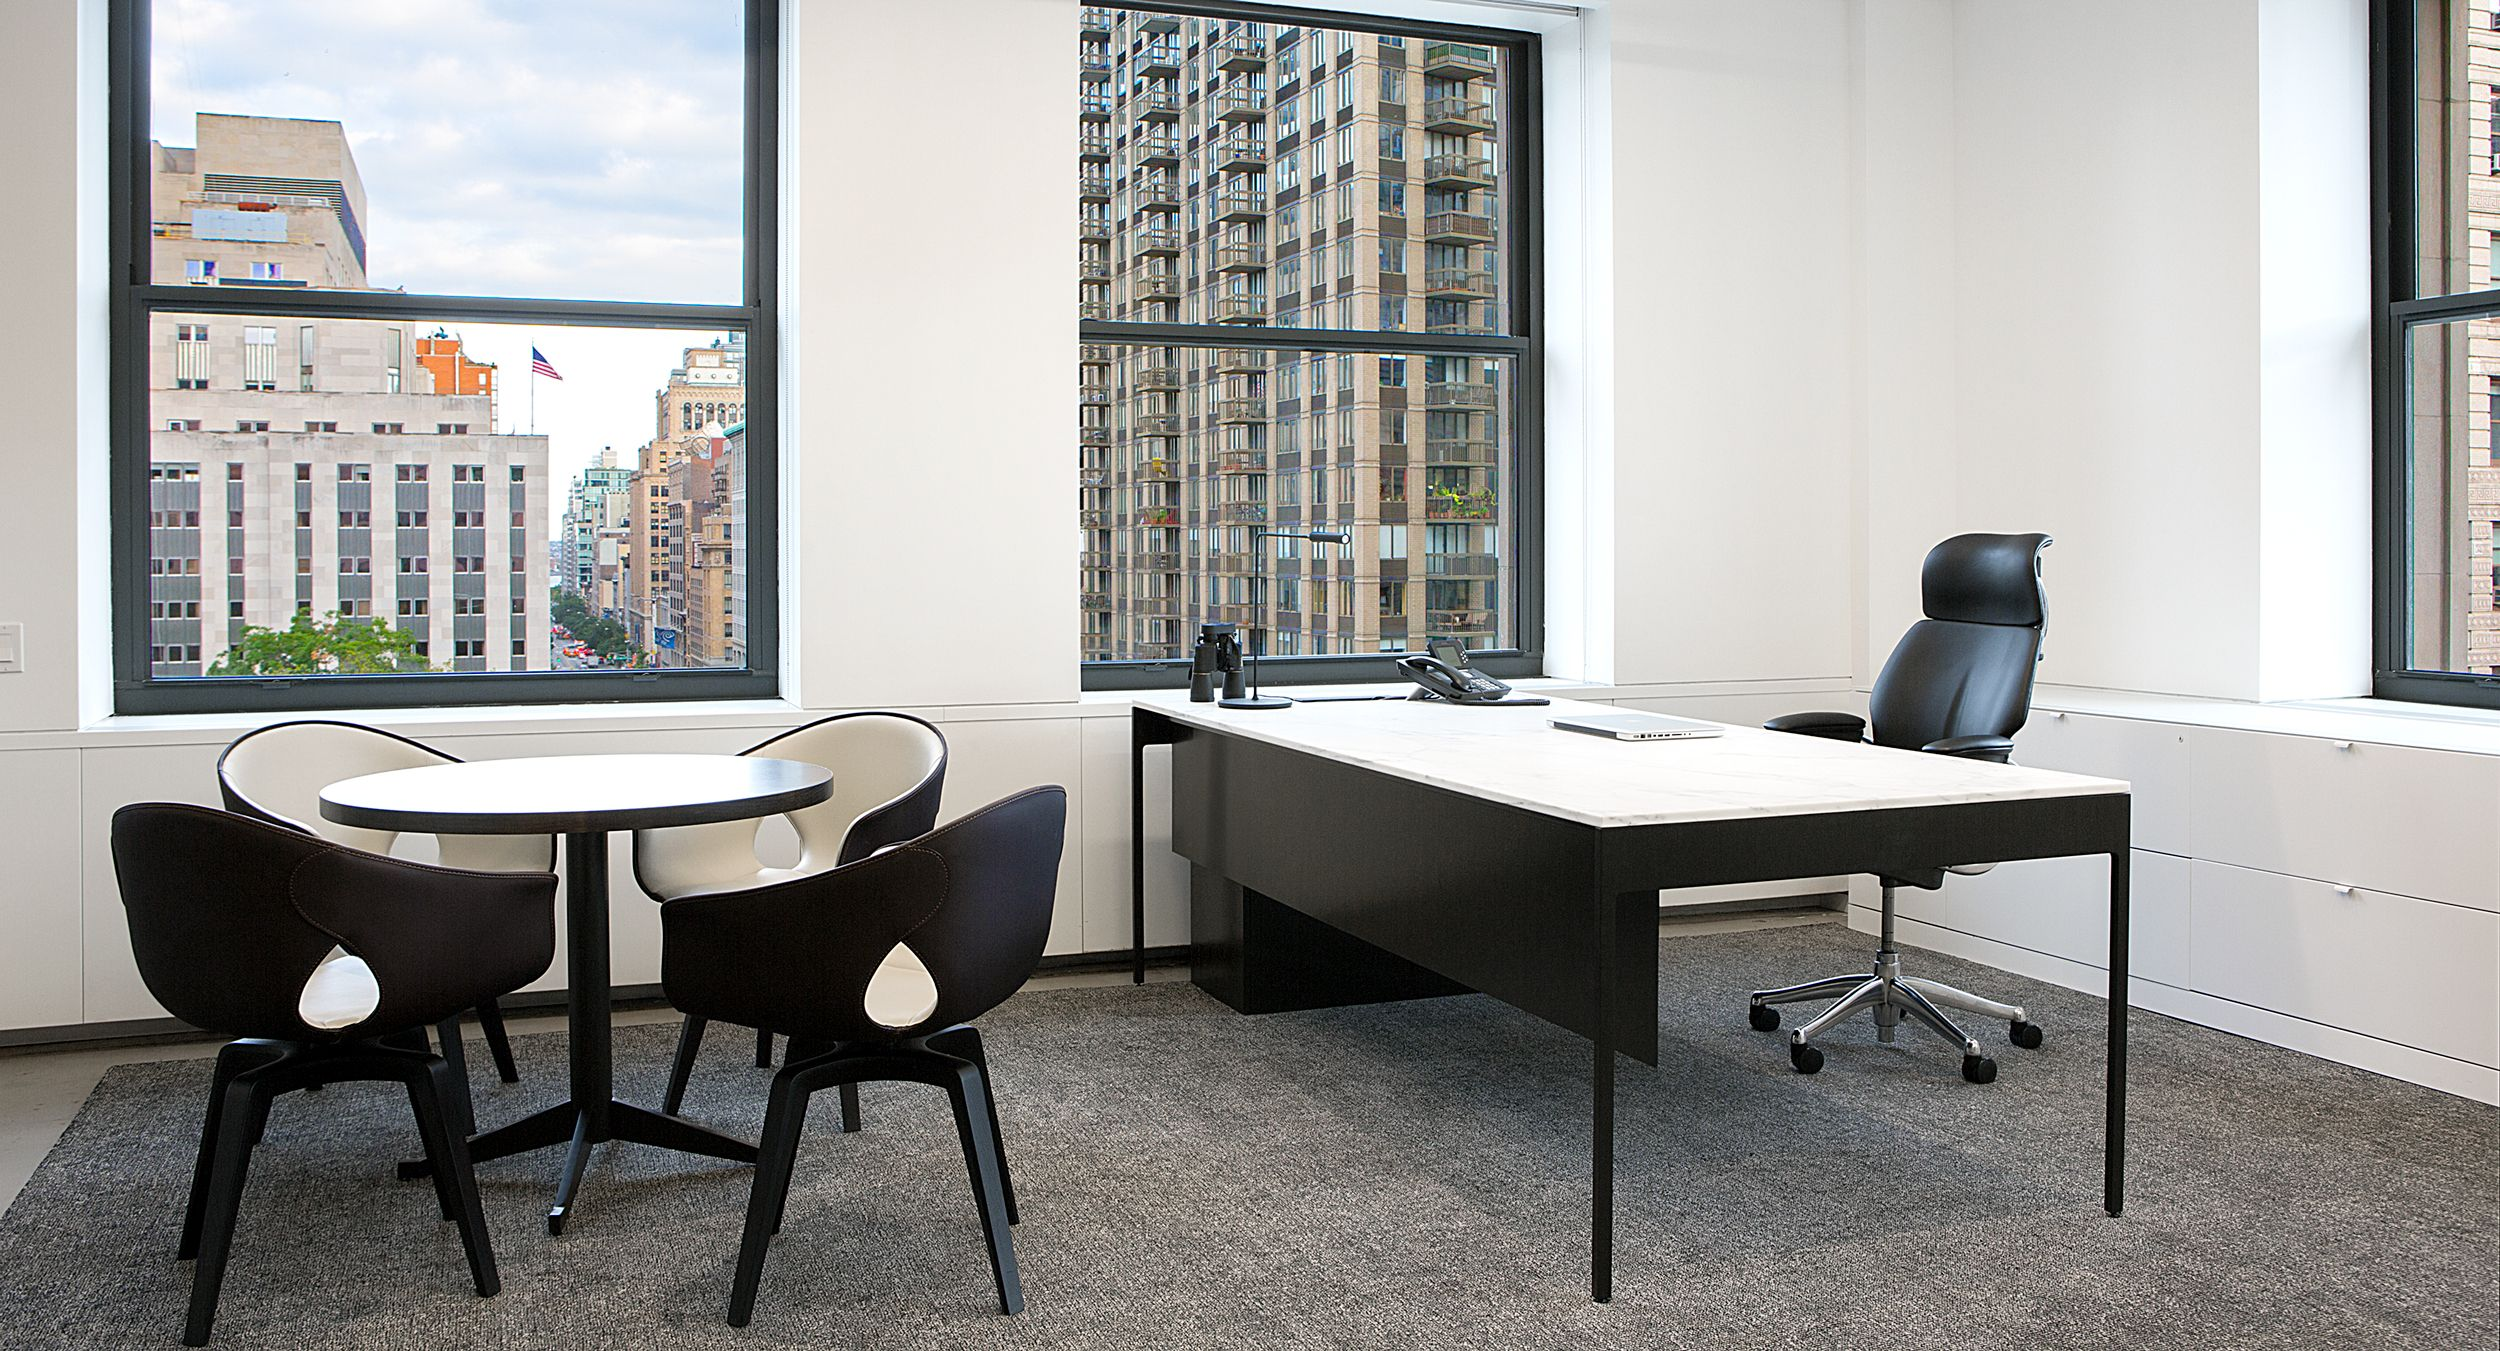 Private offices feature White Corian and glass paired with bronze table legs.